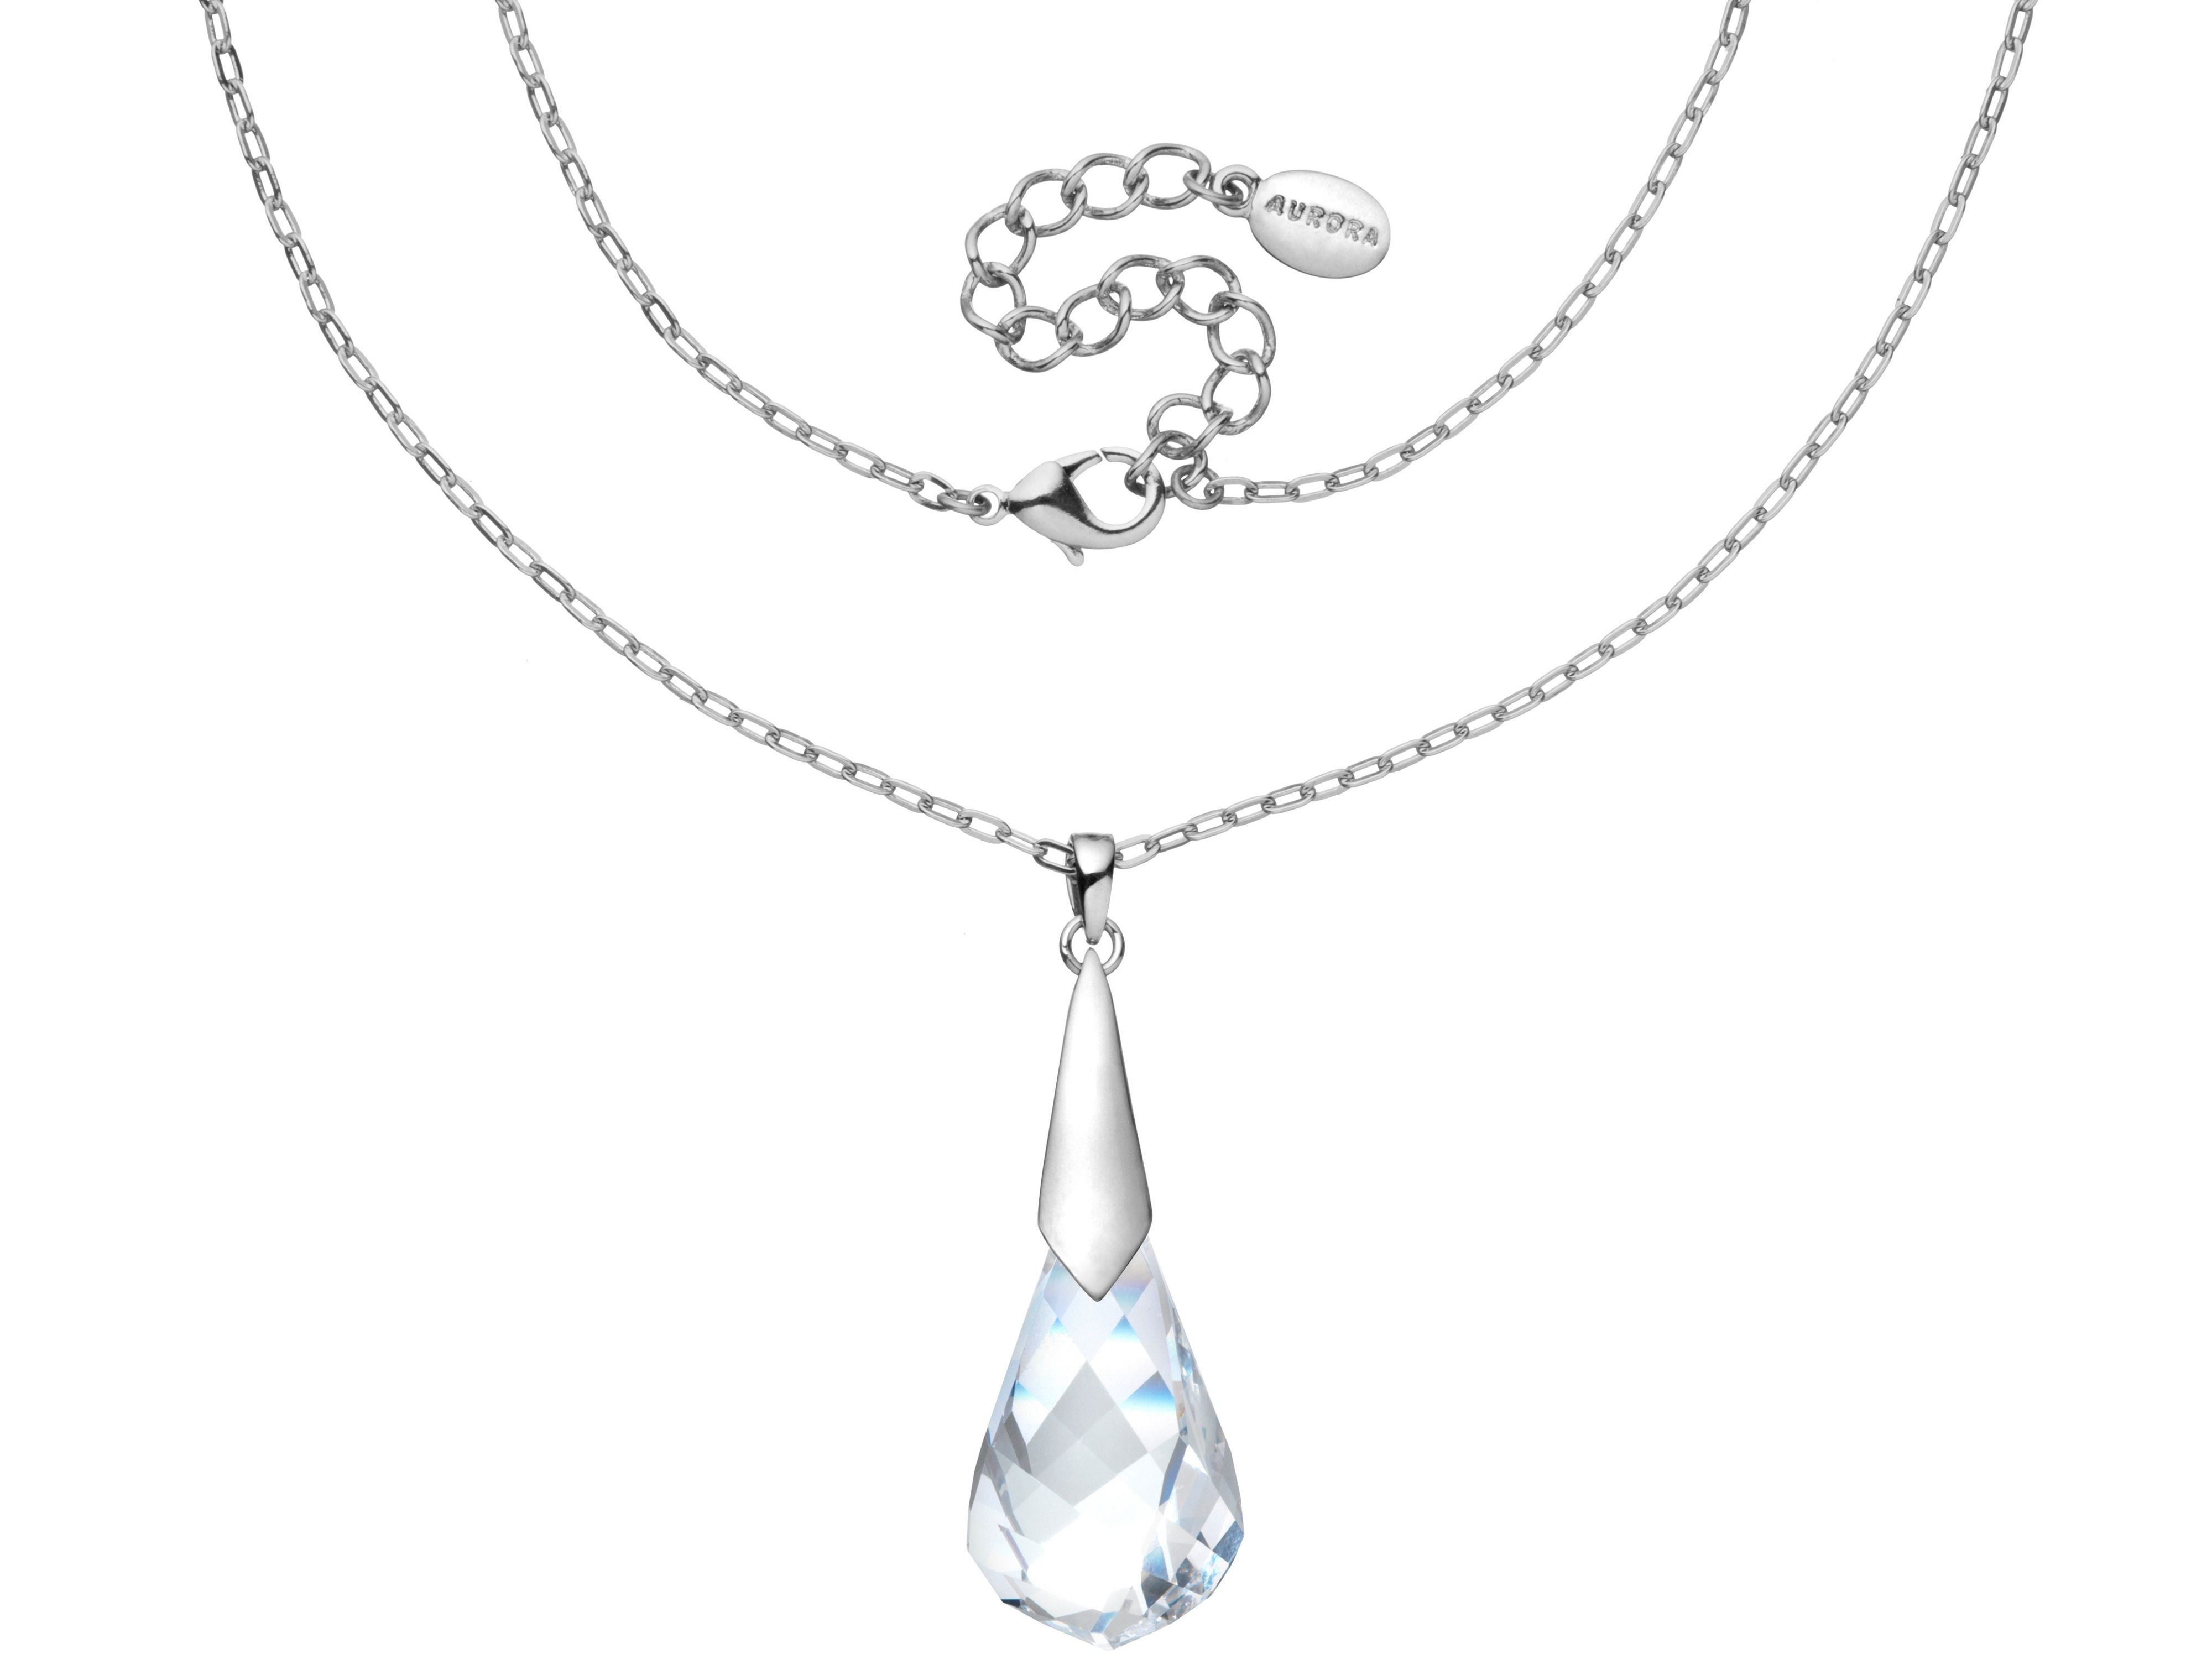 Swarovski 18Ct White Gold Twisted Crystal Pendant